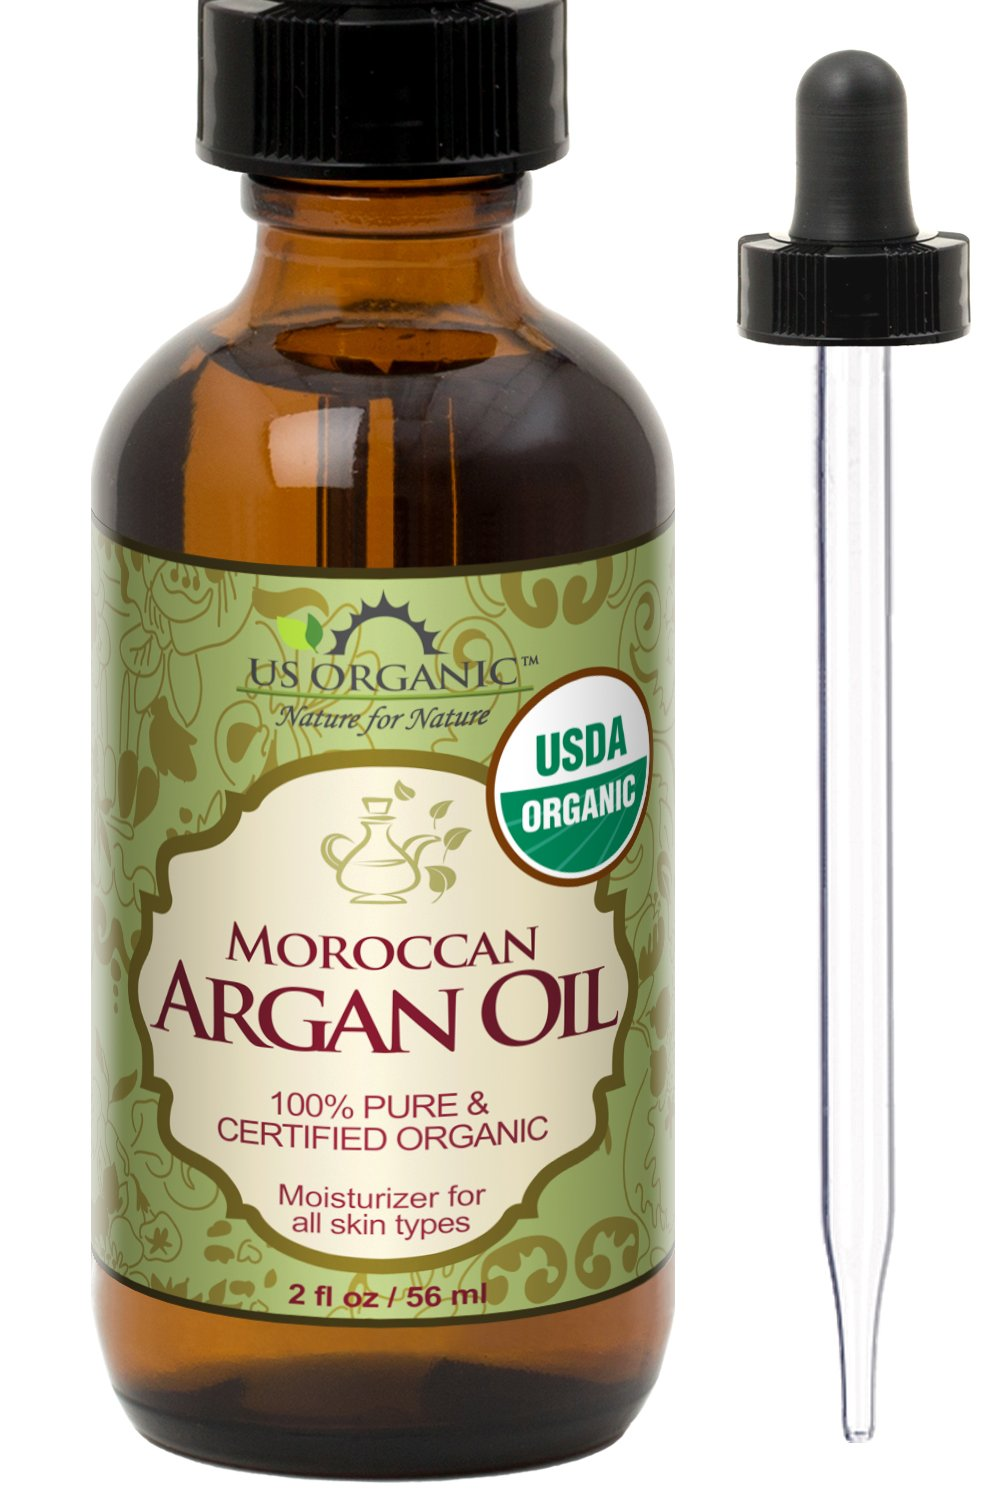 US Organic Moroccan Argan Oil, USDA Certified Organic,100% Pure & Natural, Cold Pressed Virgin, Unrefined, 2 Ounce in Amber Glass Bottle with Glass Eye Dropper for Easy Application US Organic Group Corp AROL021 AROL041